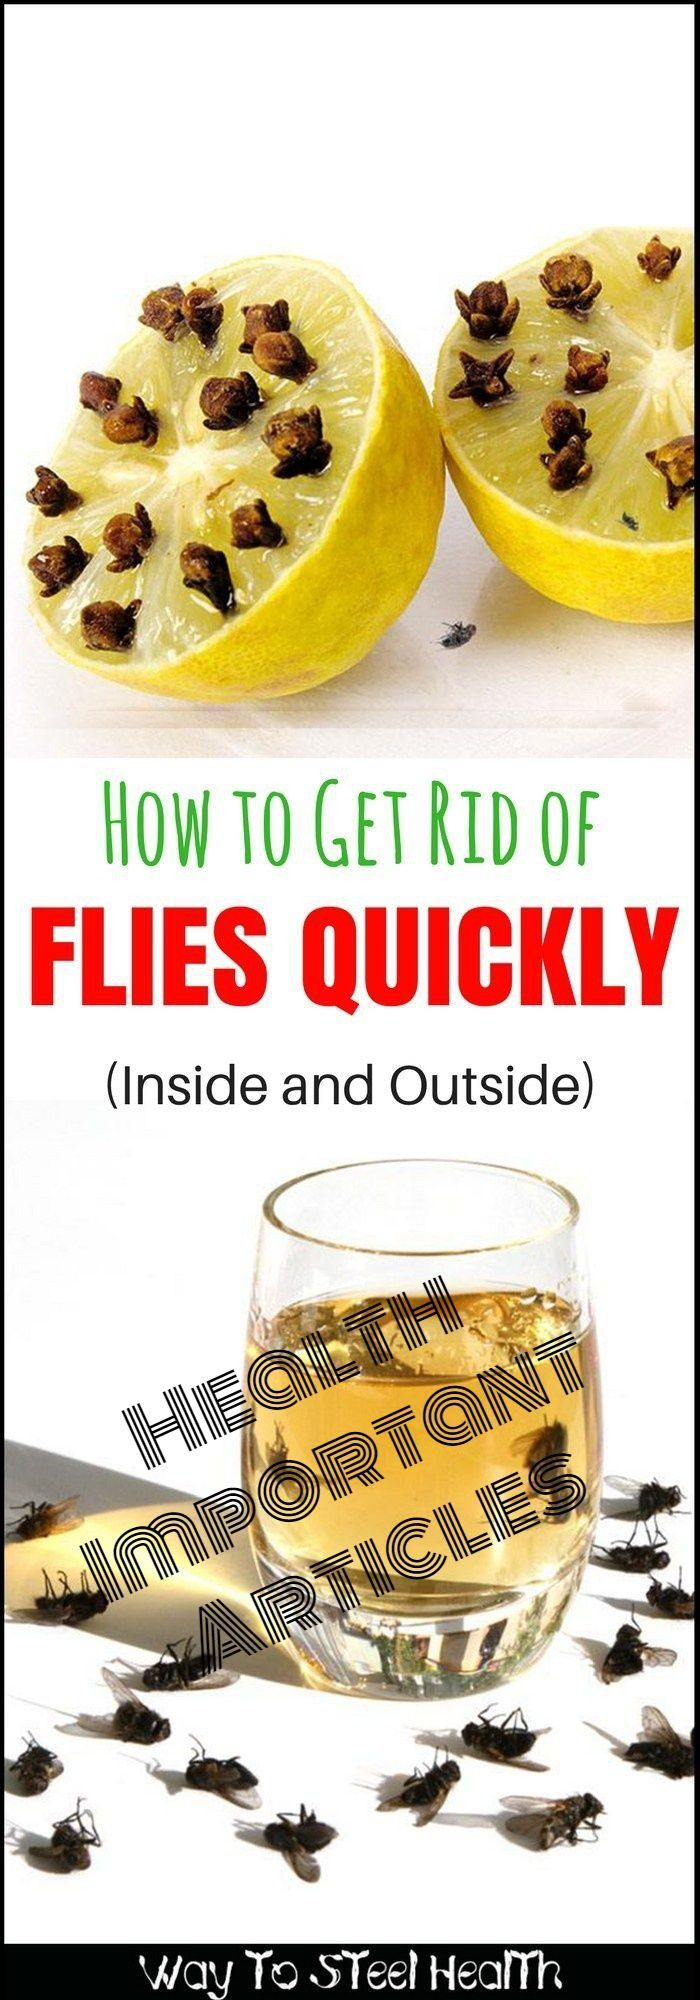 How to get rid of flies quickly inside u outside diy house